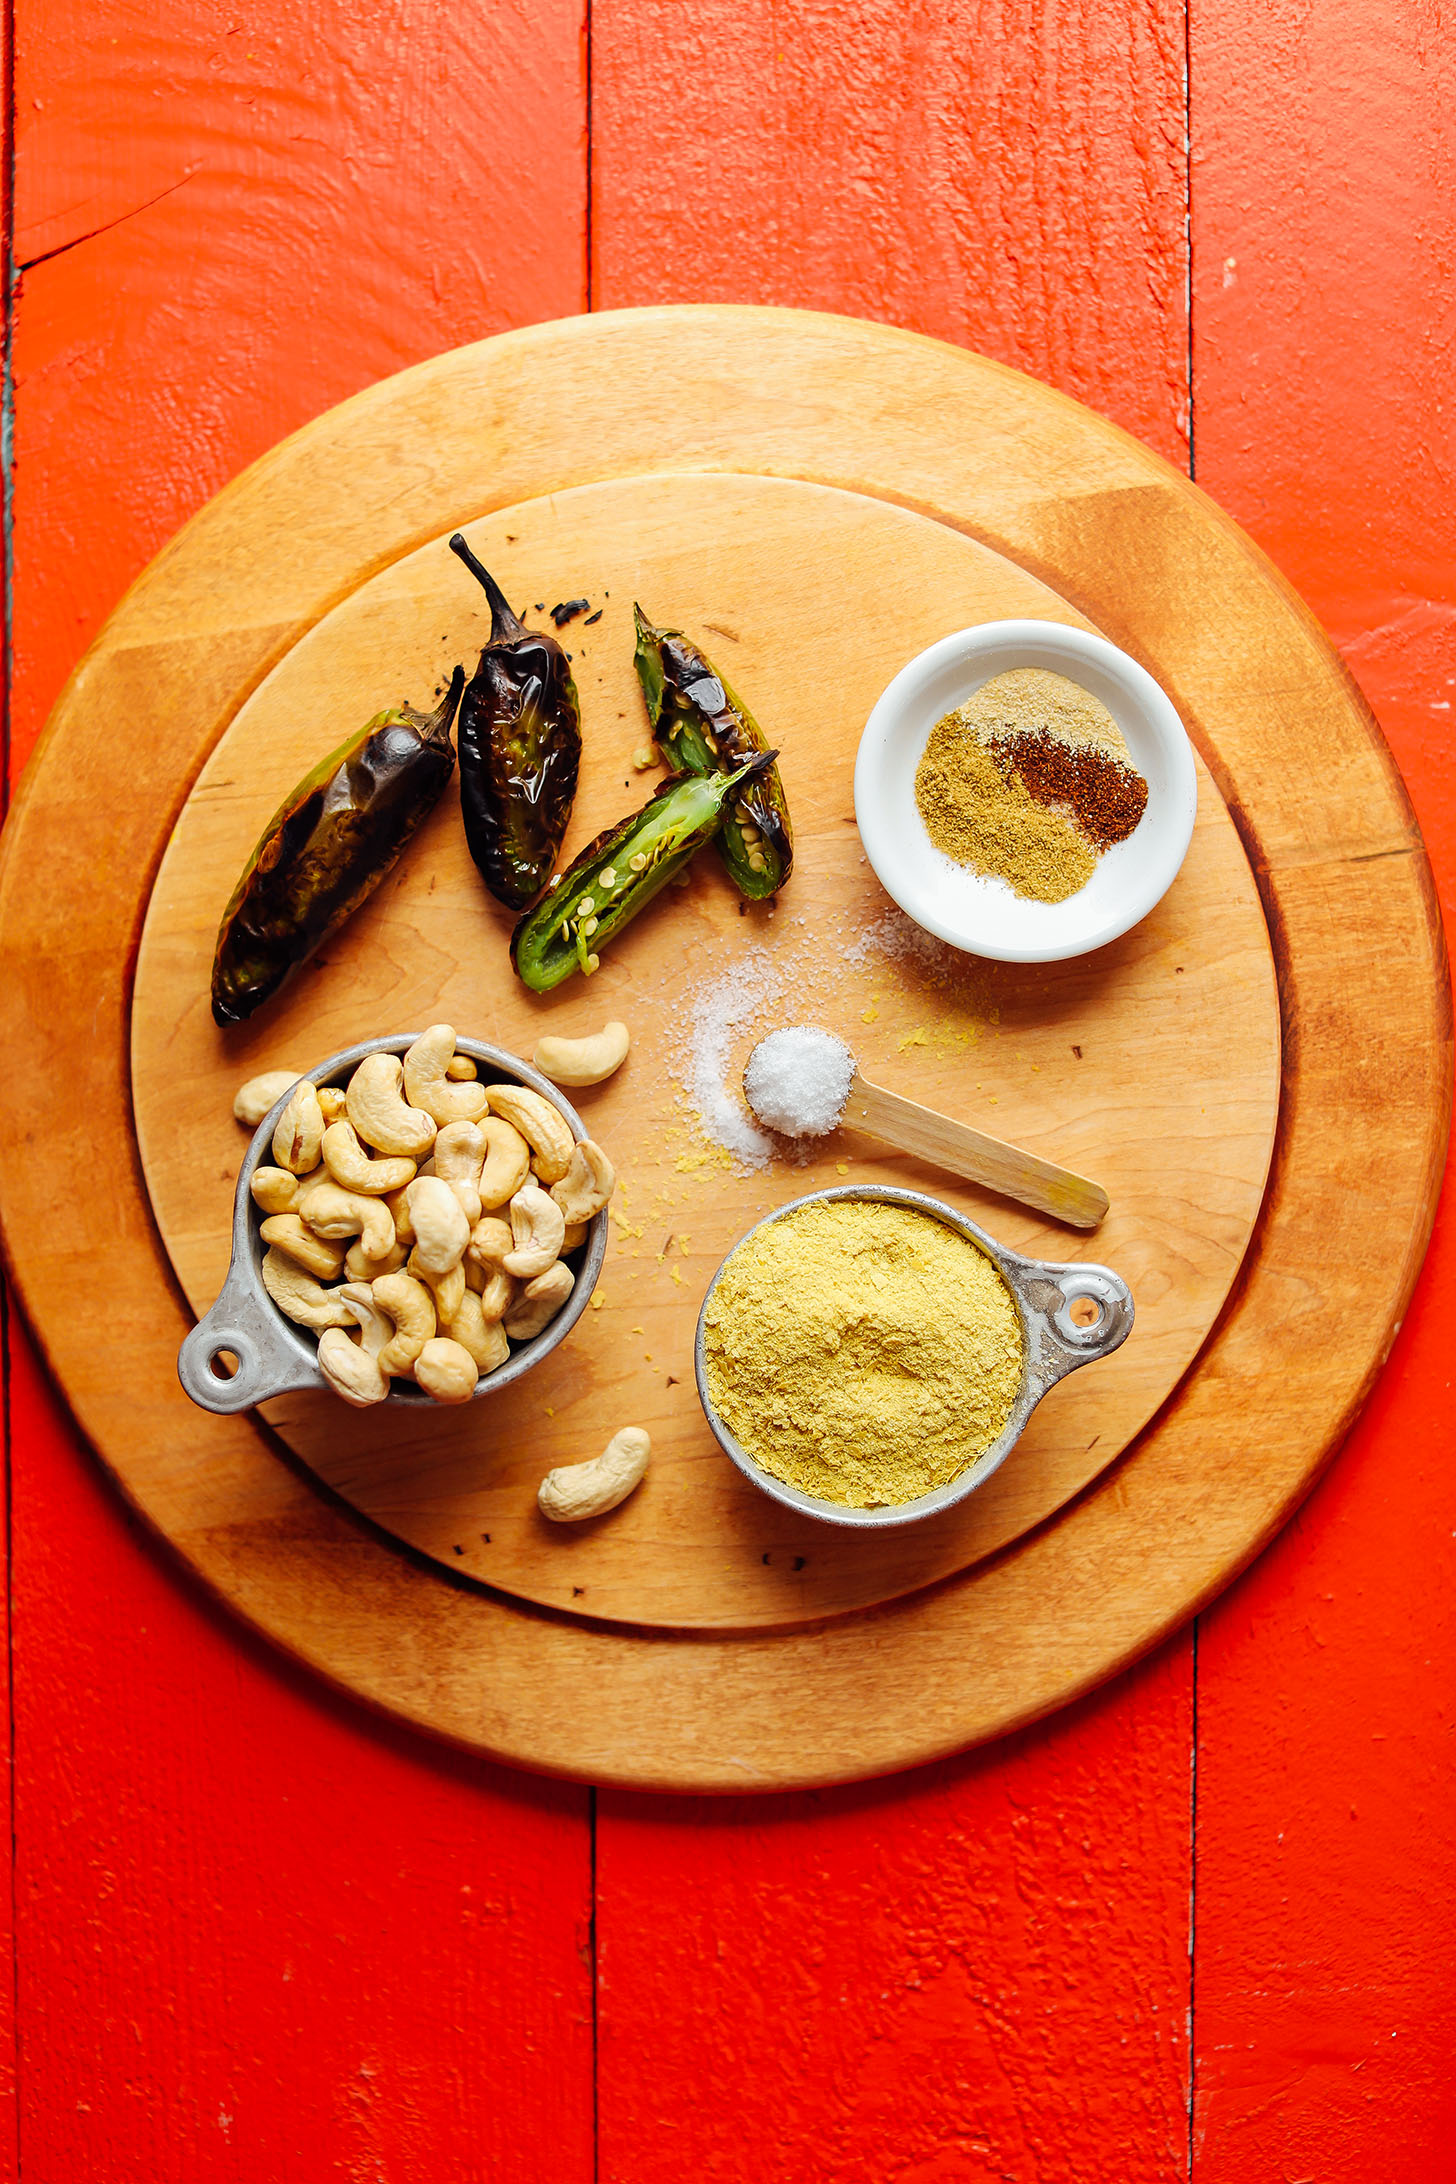 Wood cutting board with roasted jalapenos, cashews, nutritional yeast, salt, and spices for Creamy Roasted Jalapeno Vegan Queso